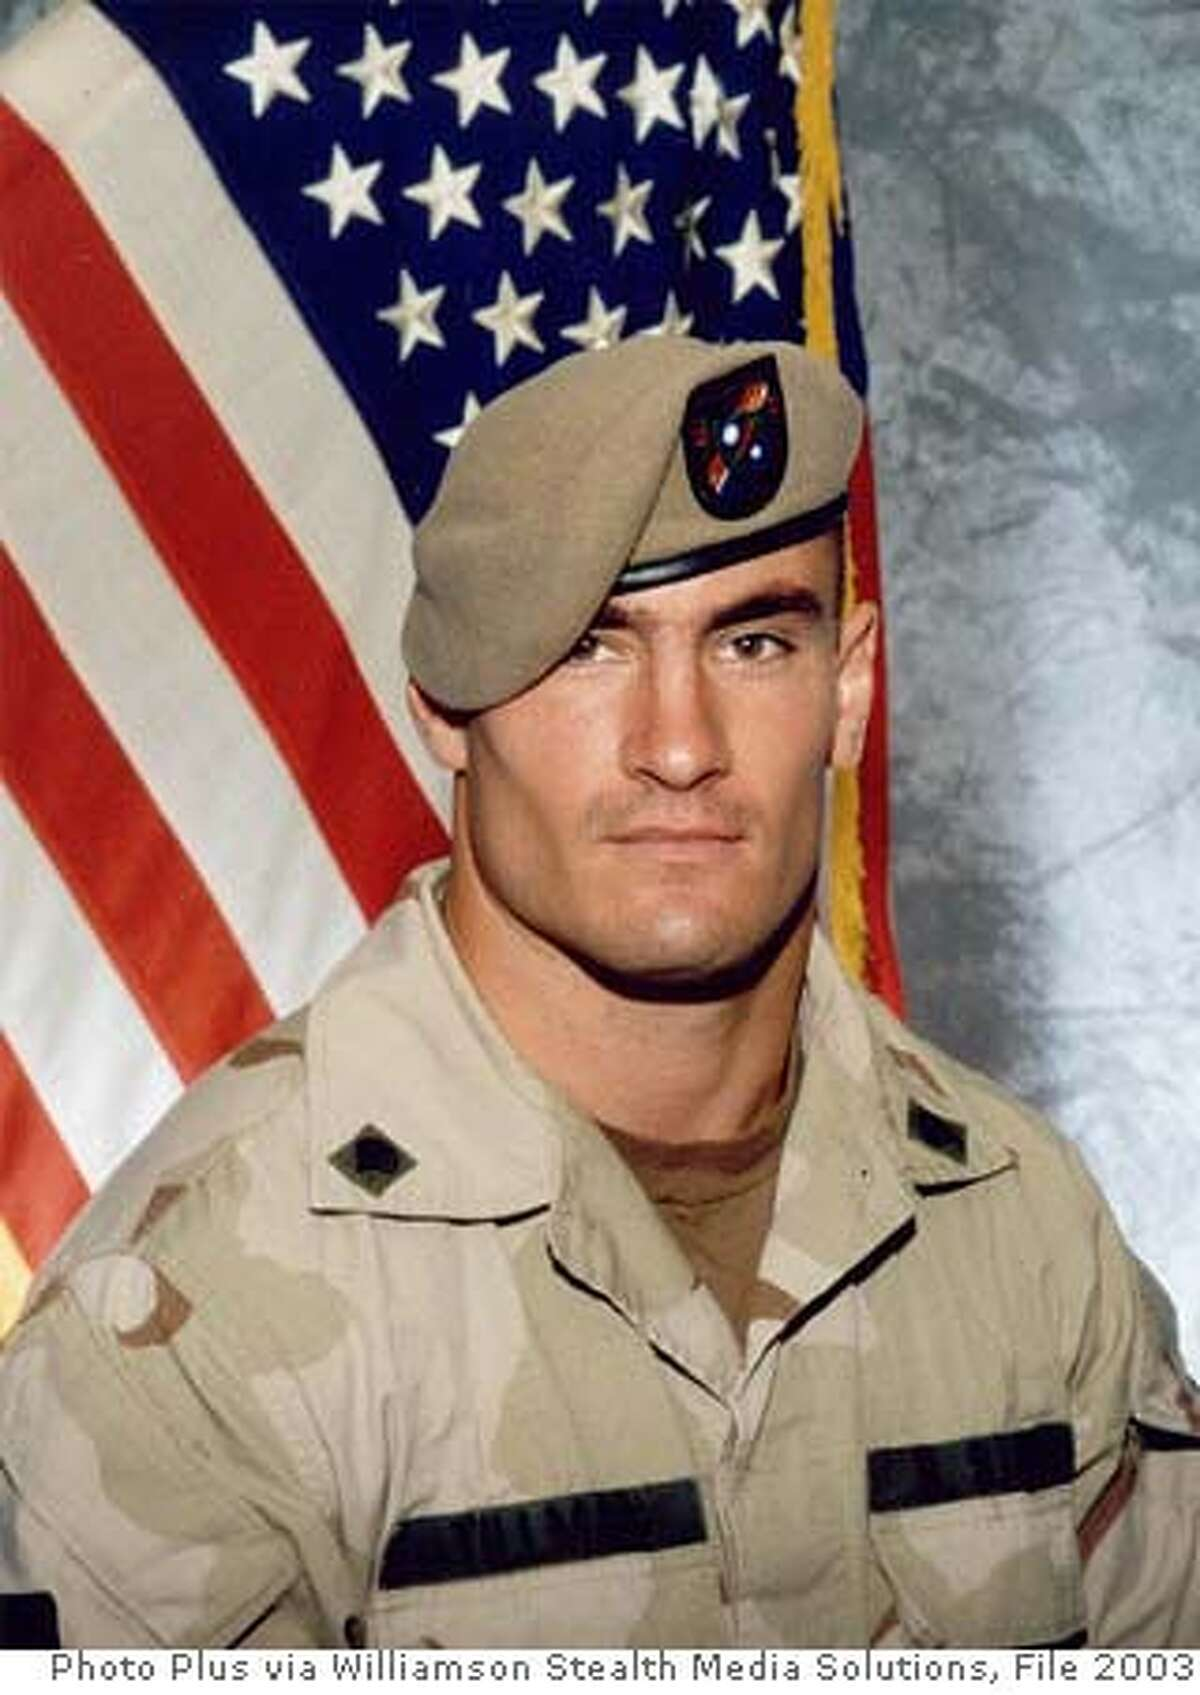 ** FILE ** Former Arizona Cardinals football player Pat Tillman, is shown in a June 2003 photo, released by Photography Plus. A Pentagon investigation will recommend that nine officers, including up to four generals, be held accountable for missteps in the aftermath of the friendly fire death of Tillman in Afghanistan, senior defense officials said Friday, March 23, 2007. (AP Photo/Photography Plus via Williamson Stealth Media Solutions) ** NO SALES **